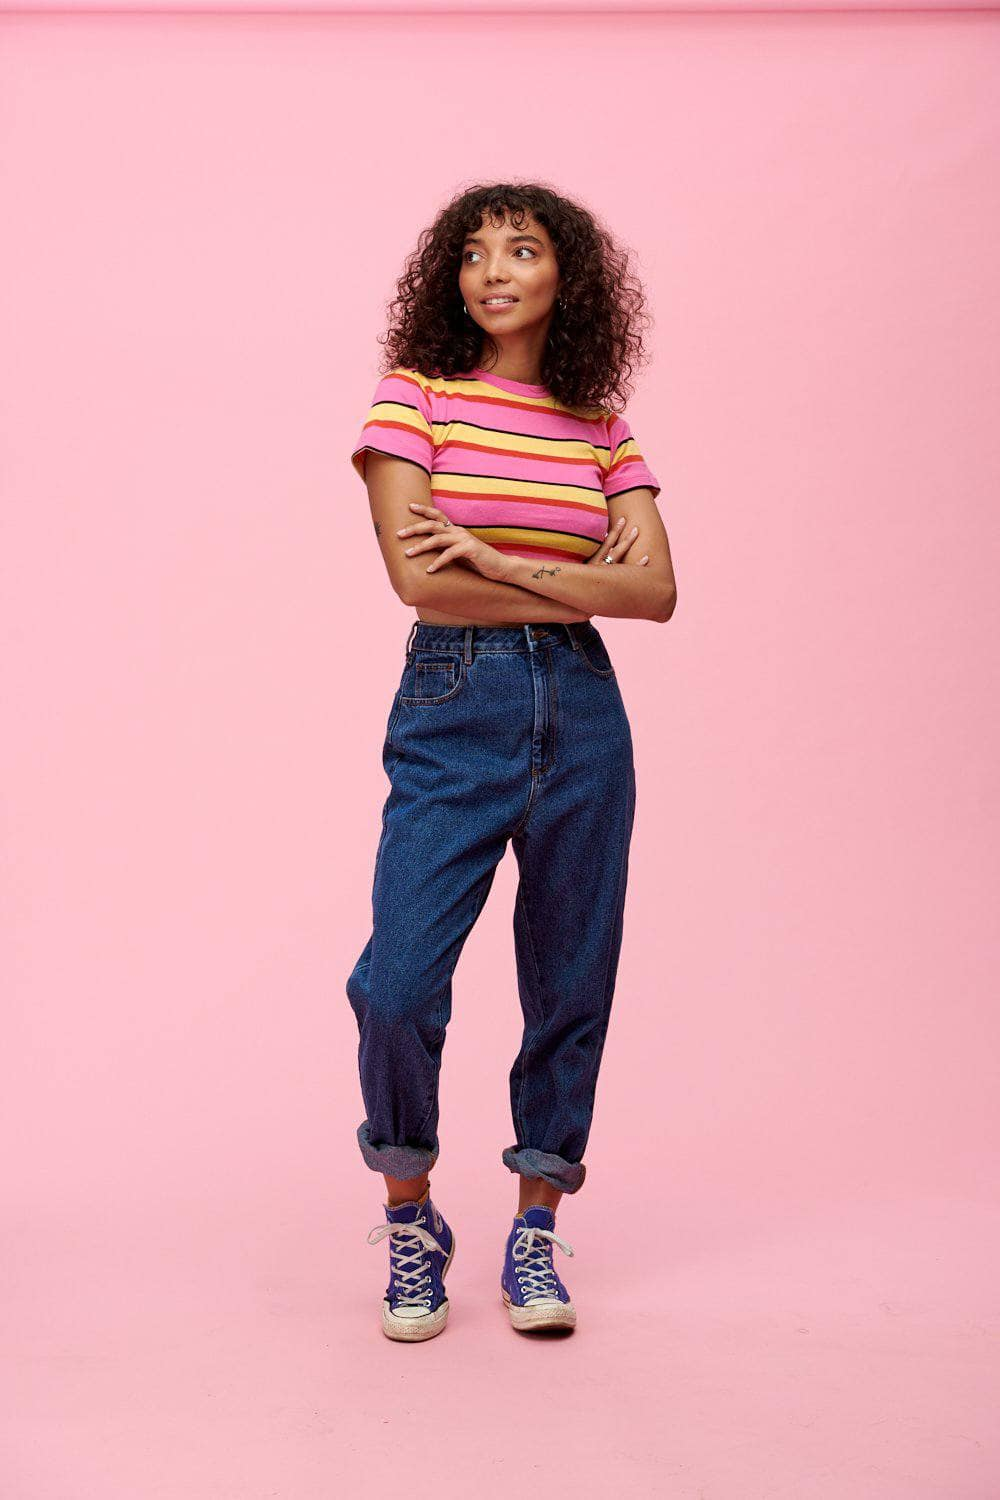 Lucy & Yak Tops Ava Short Sleeved Stripy Top In Pink & Yellow